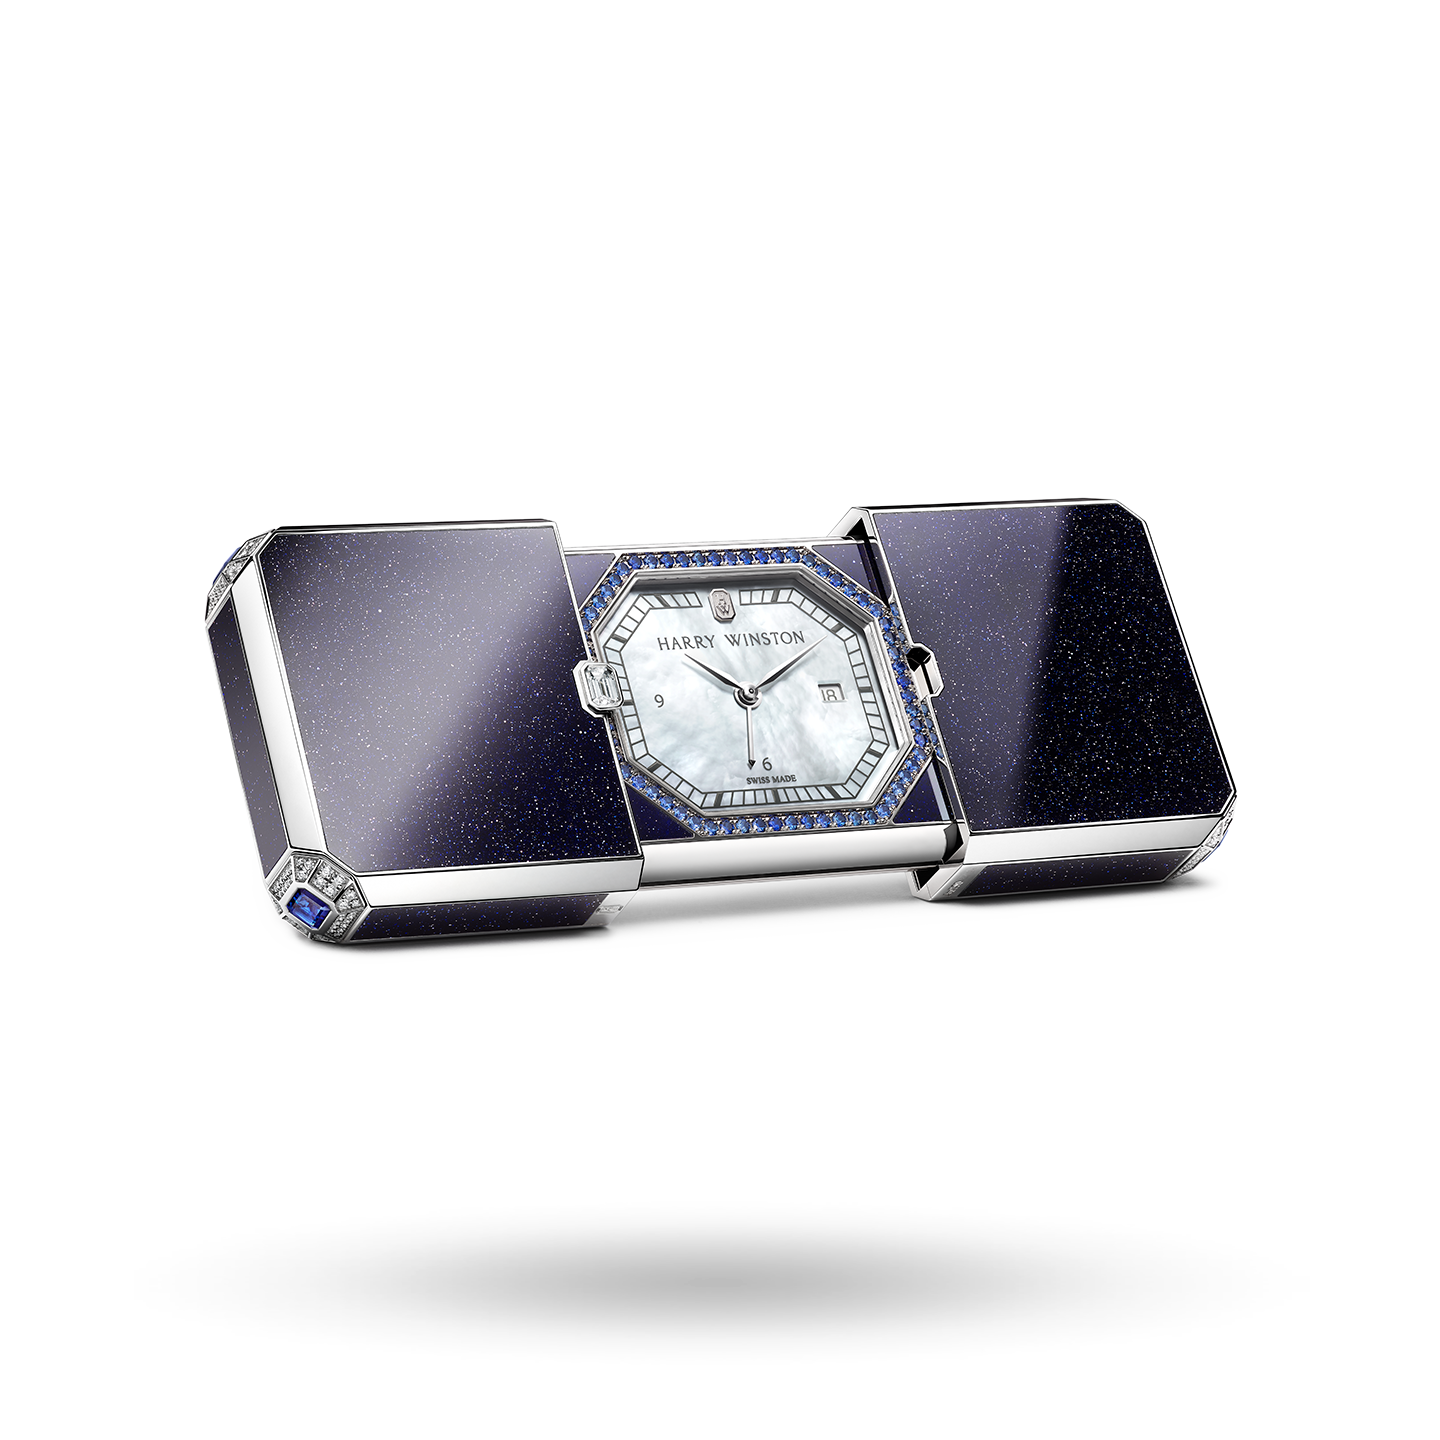 Travel Time by Harry Winston, product image 1